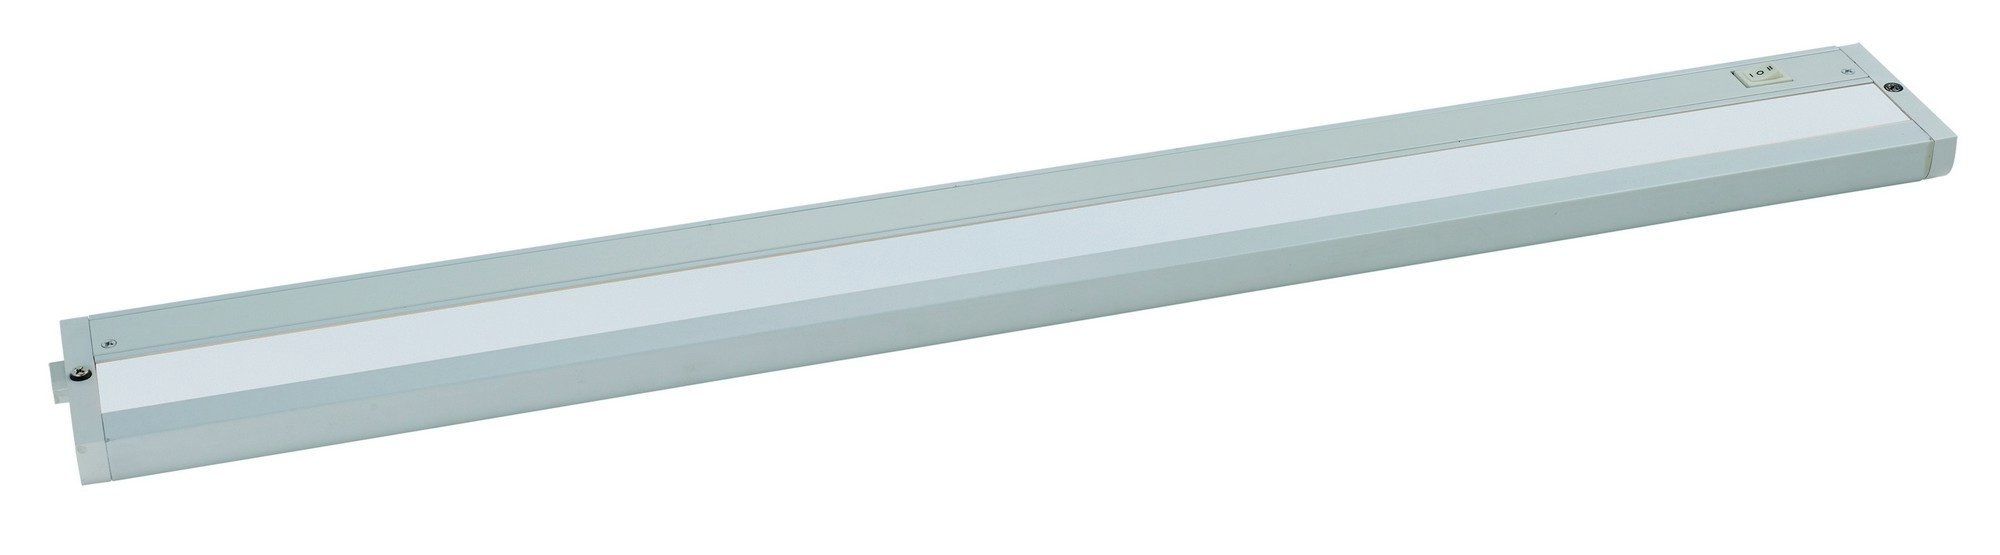 Maxim 89986WT CounterMax MX-L-120-2K 30'' 2700K or 3200K LED UC, White Finish, Glass, PCB LED Bulb , 60W Max., Dry Safety Rating, Standard Dimmable, Shade Material, Rated Lumens